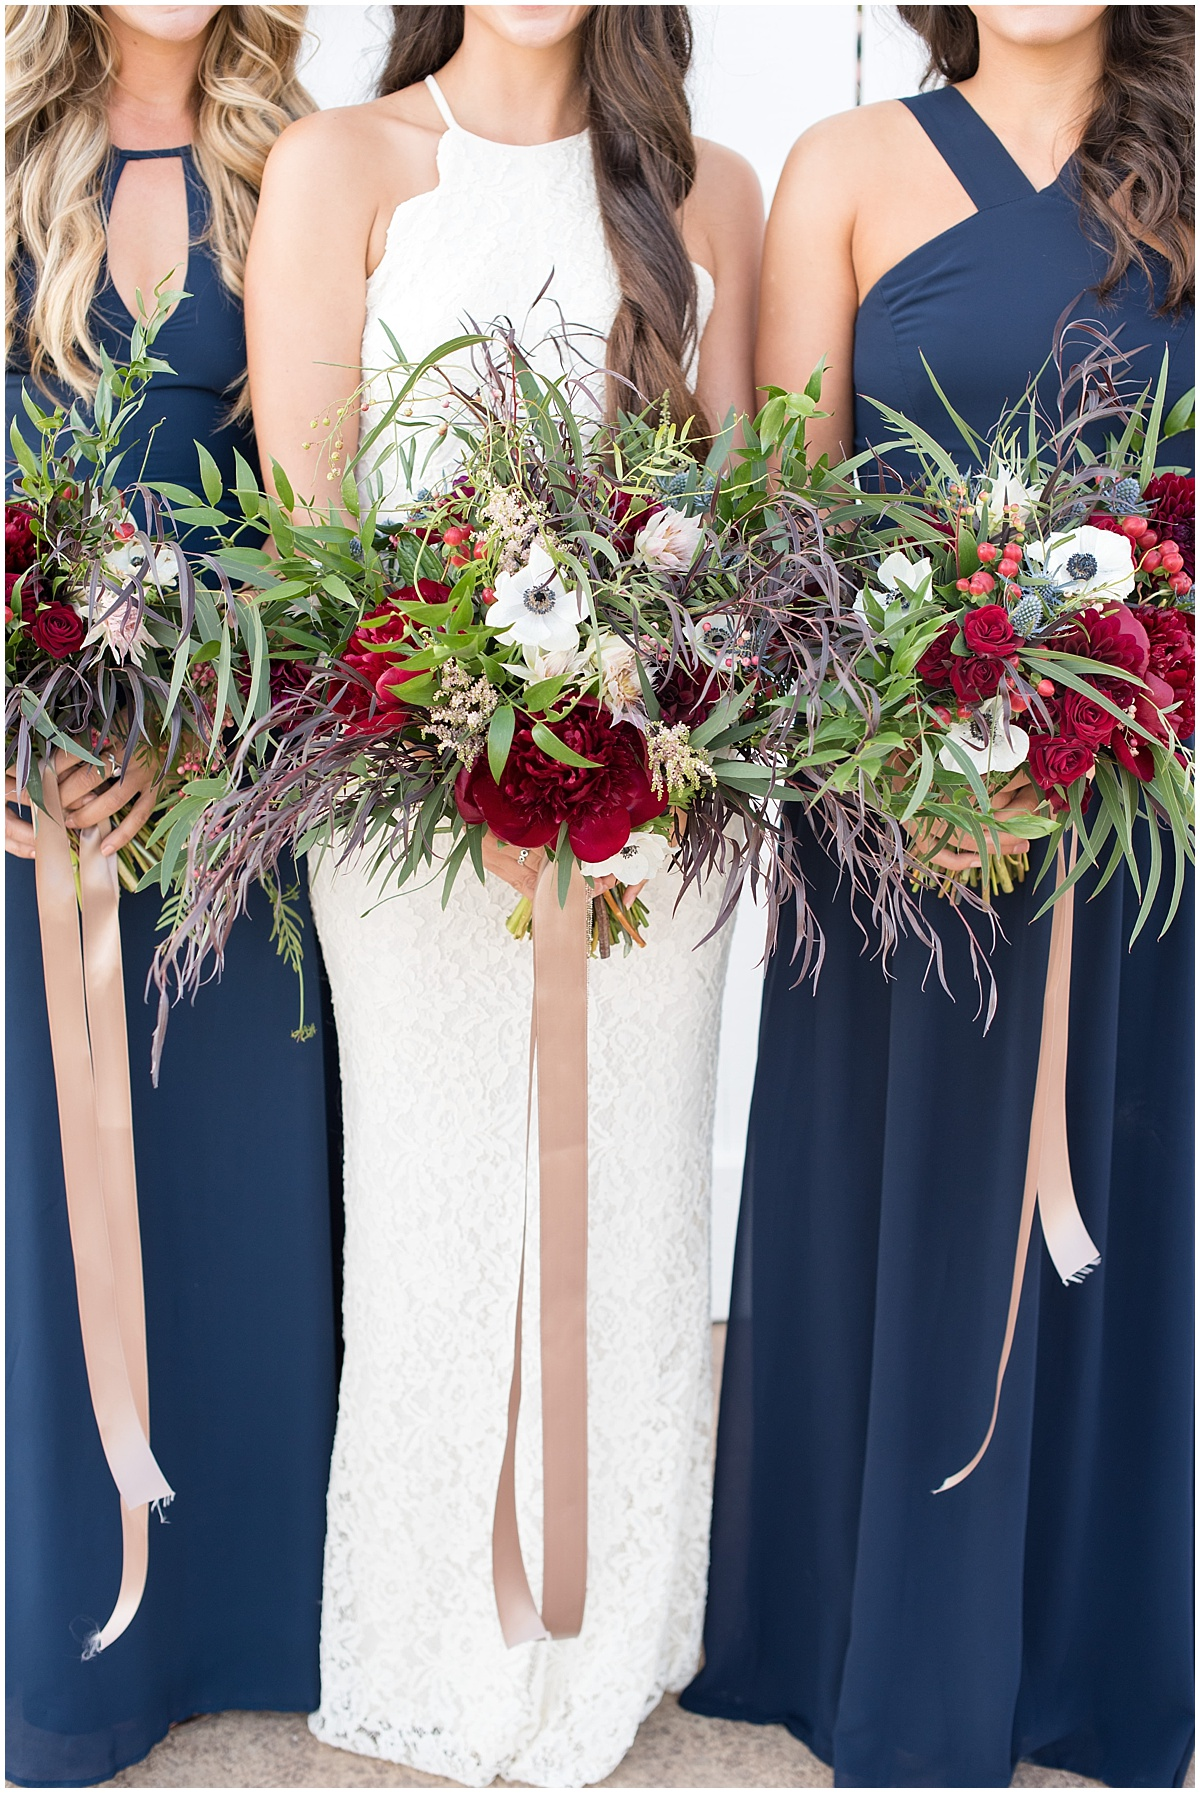 navy long bridesmaid dresses with big bouquets and ribbons. Navy and berry hues.